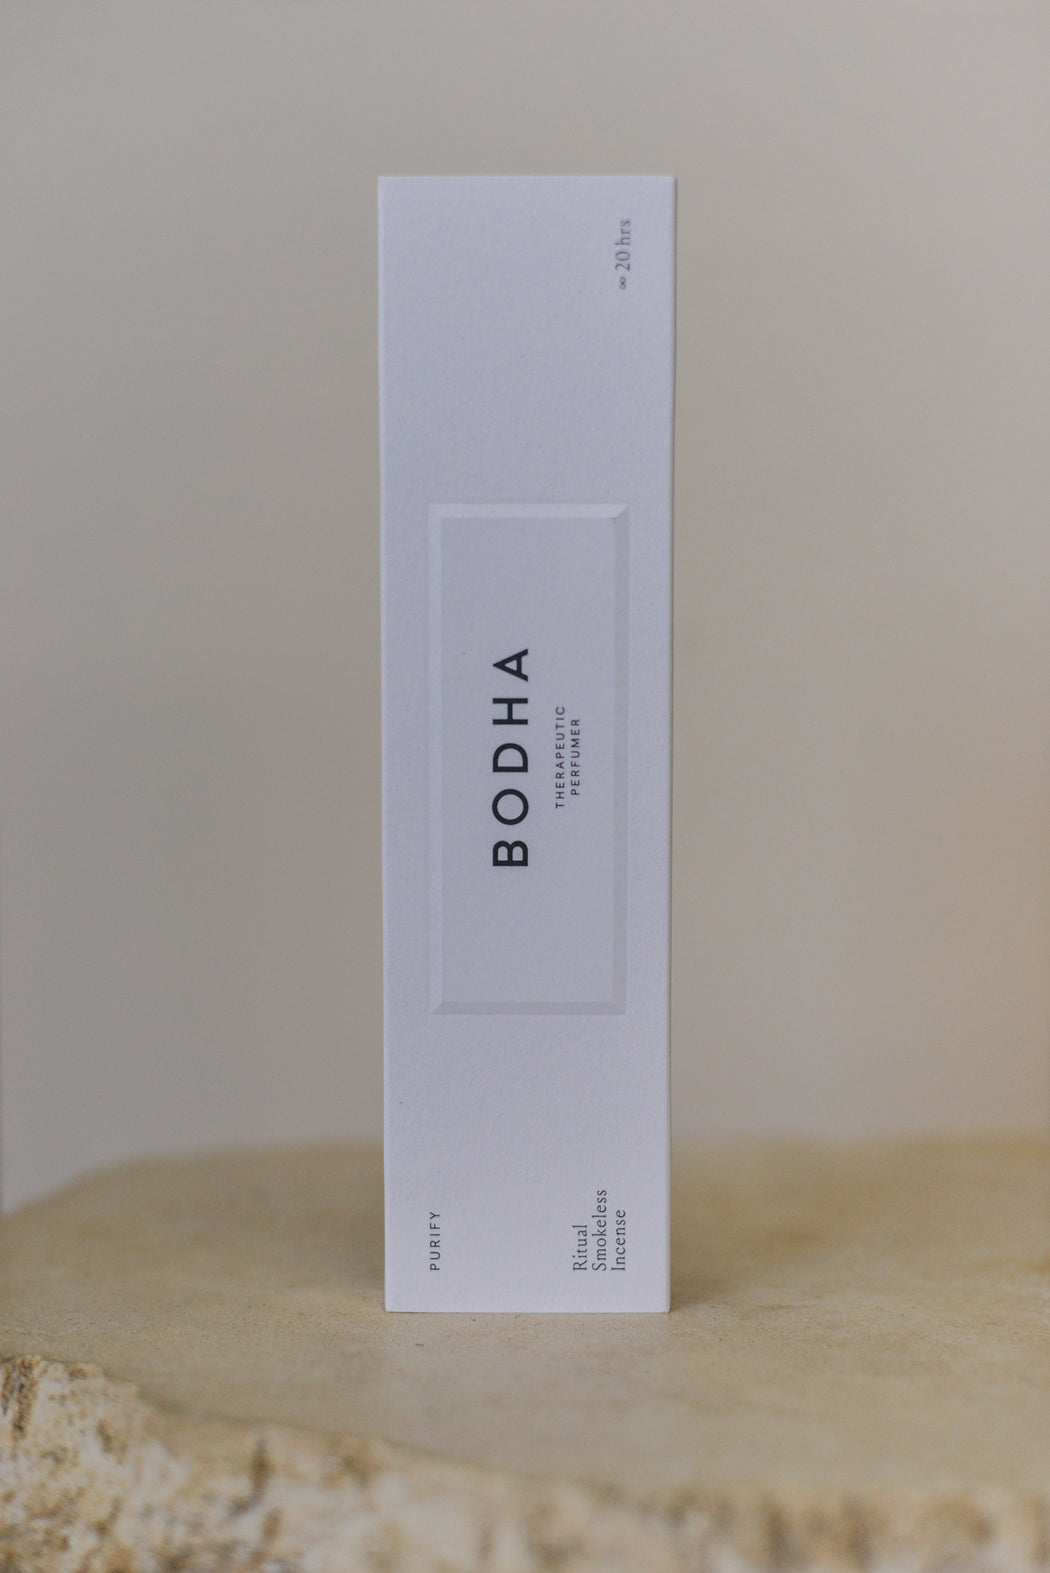 Bodha Purify Ritual Incense